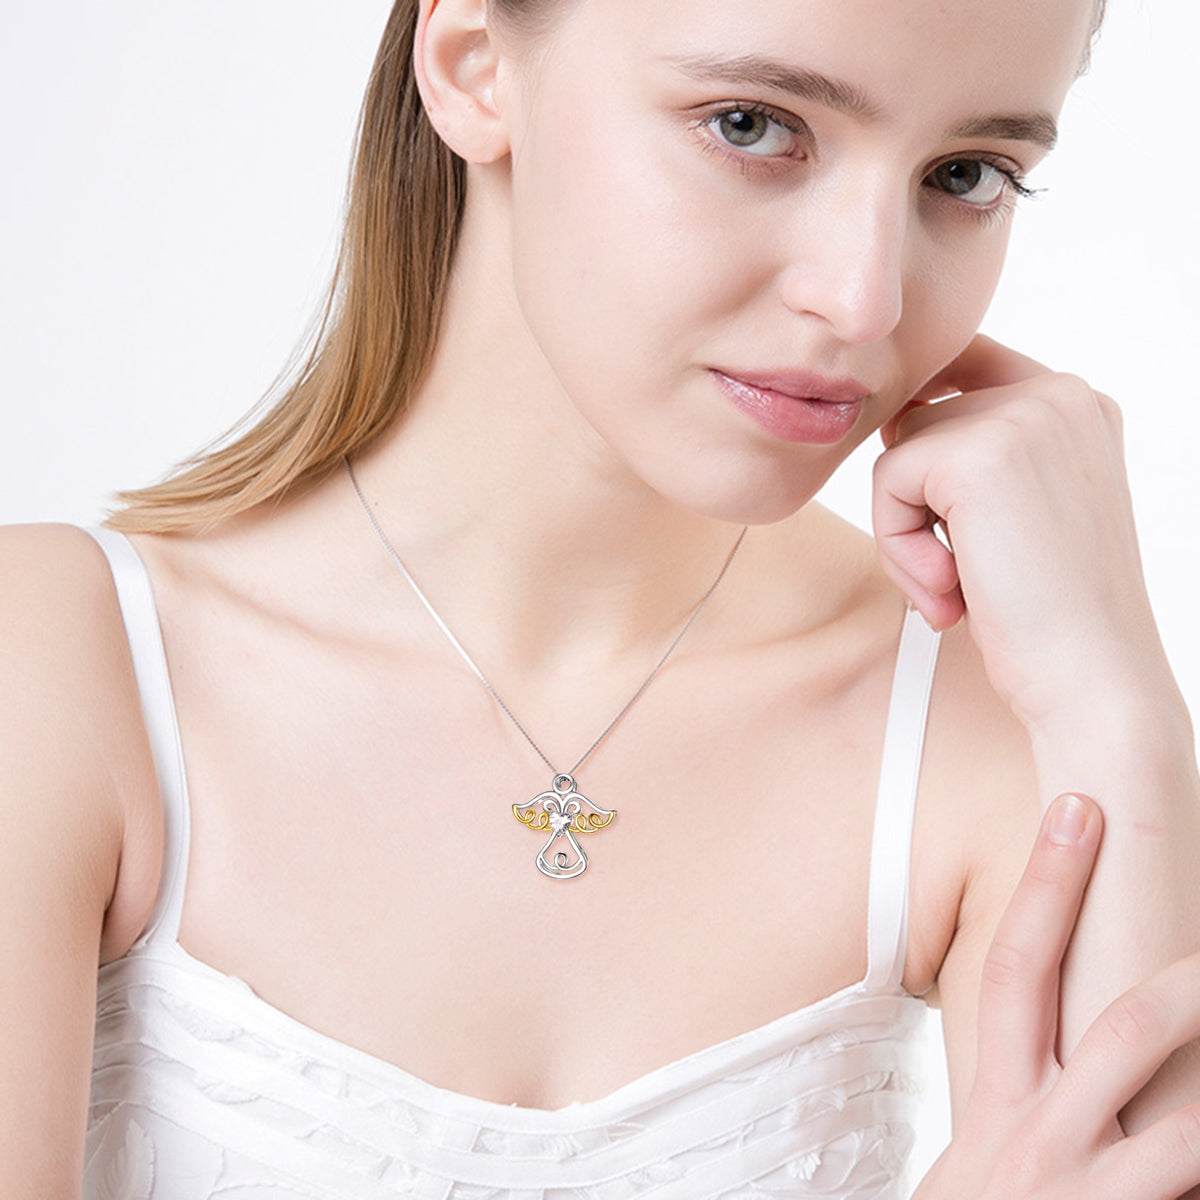 Yellow Gold and Rhodium Plating Angle Necklace Mother Birthday Necklace